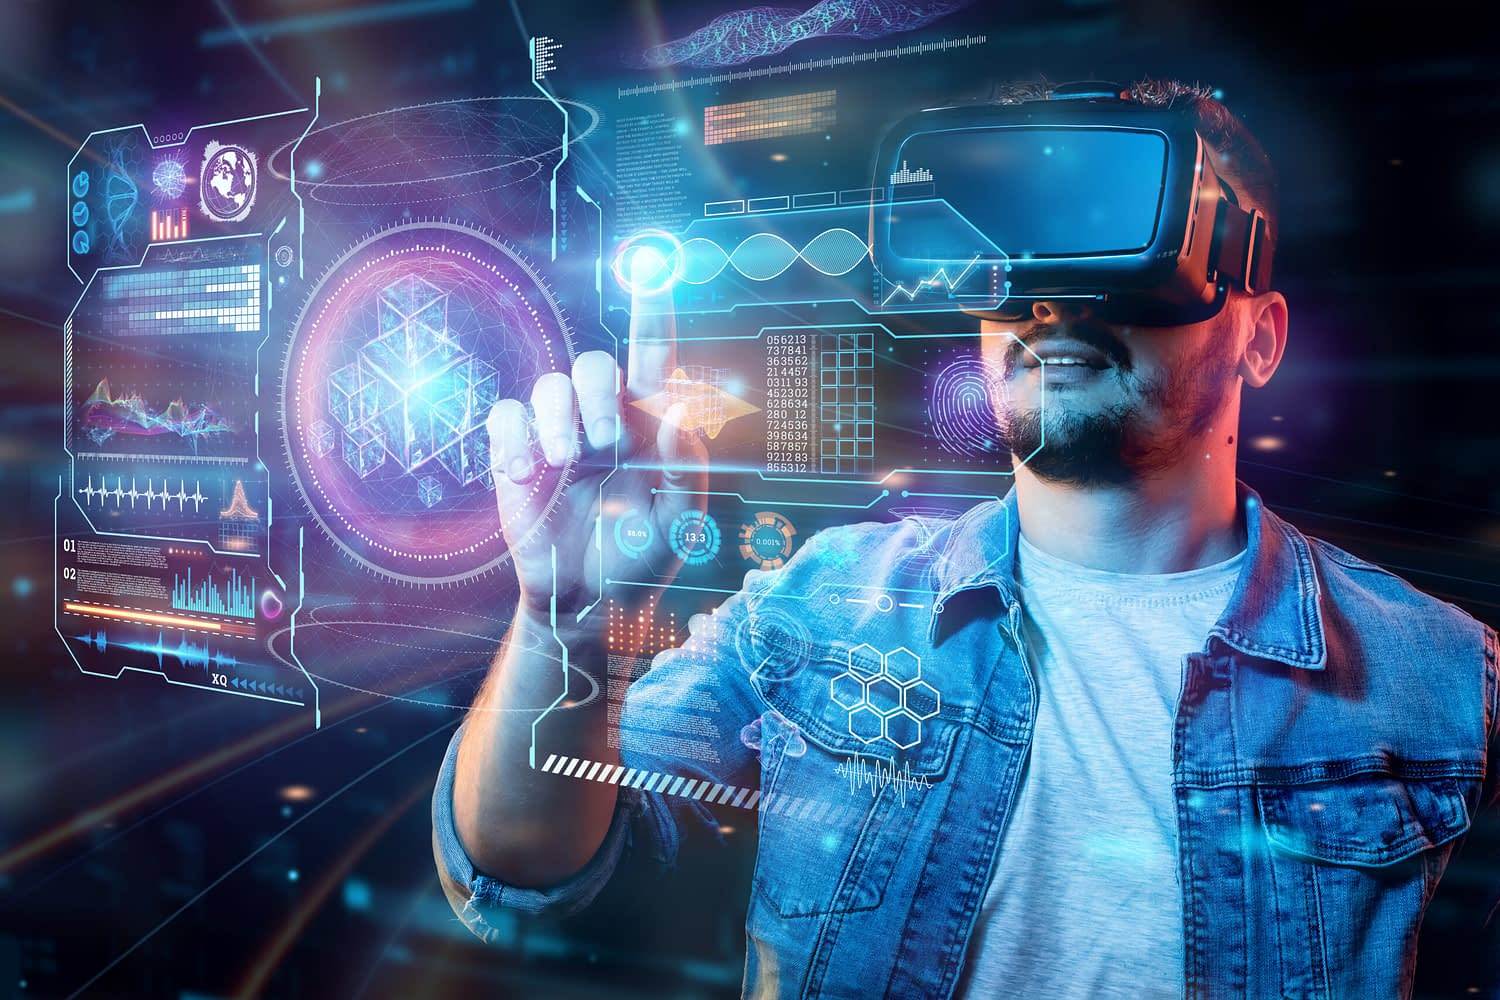 Portrait of a man with glasses of virtual reality, vr, interacts with a virtual screen. The concept of the future is here, applications complement reality, the interface of virtual reality